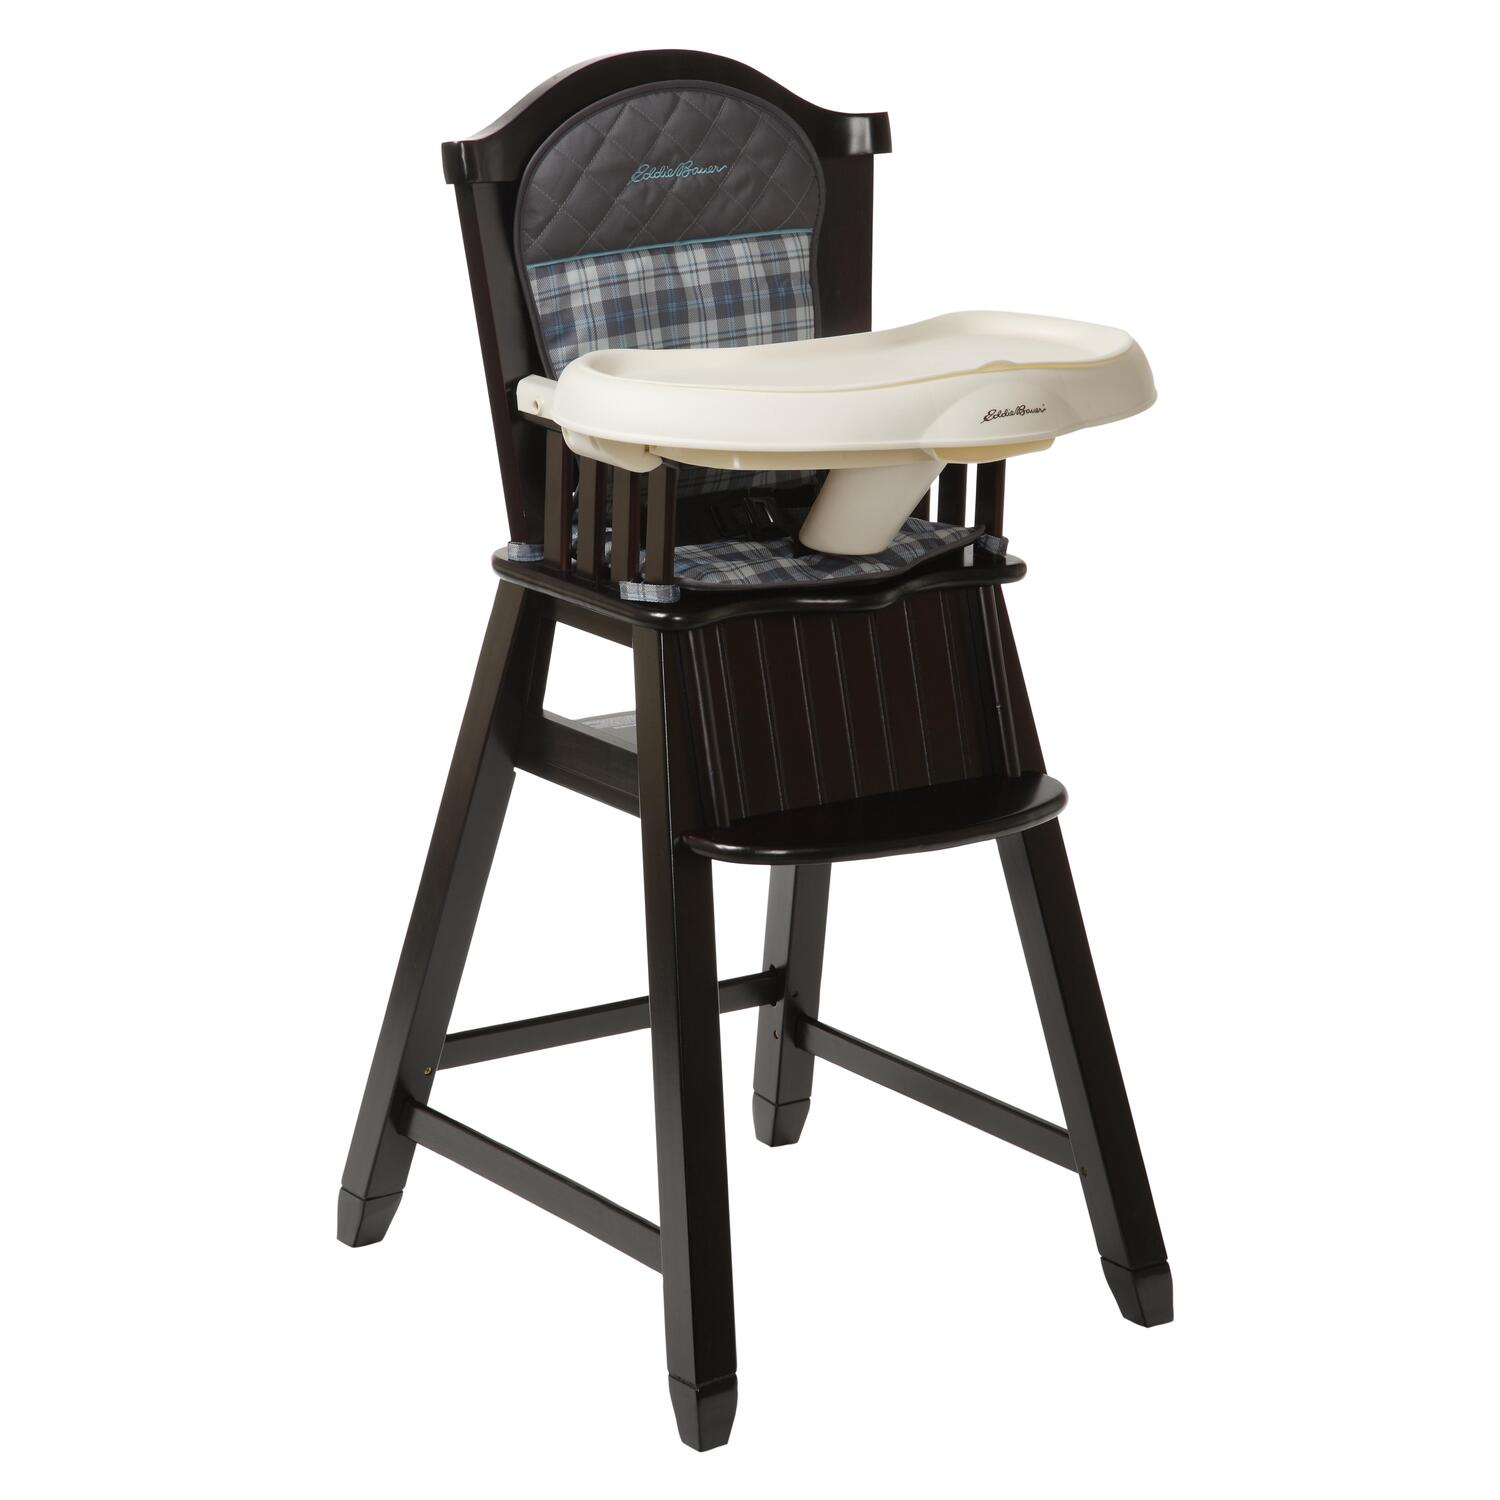 eddie bauer high chair replacement tray swivel covers uk wood ridgewood